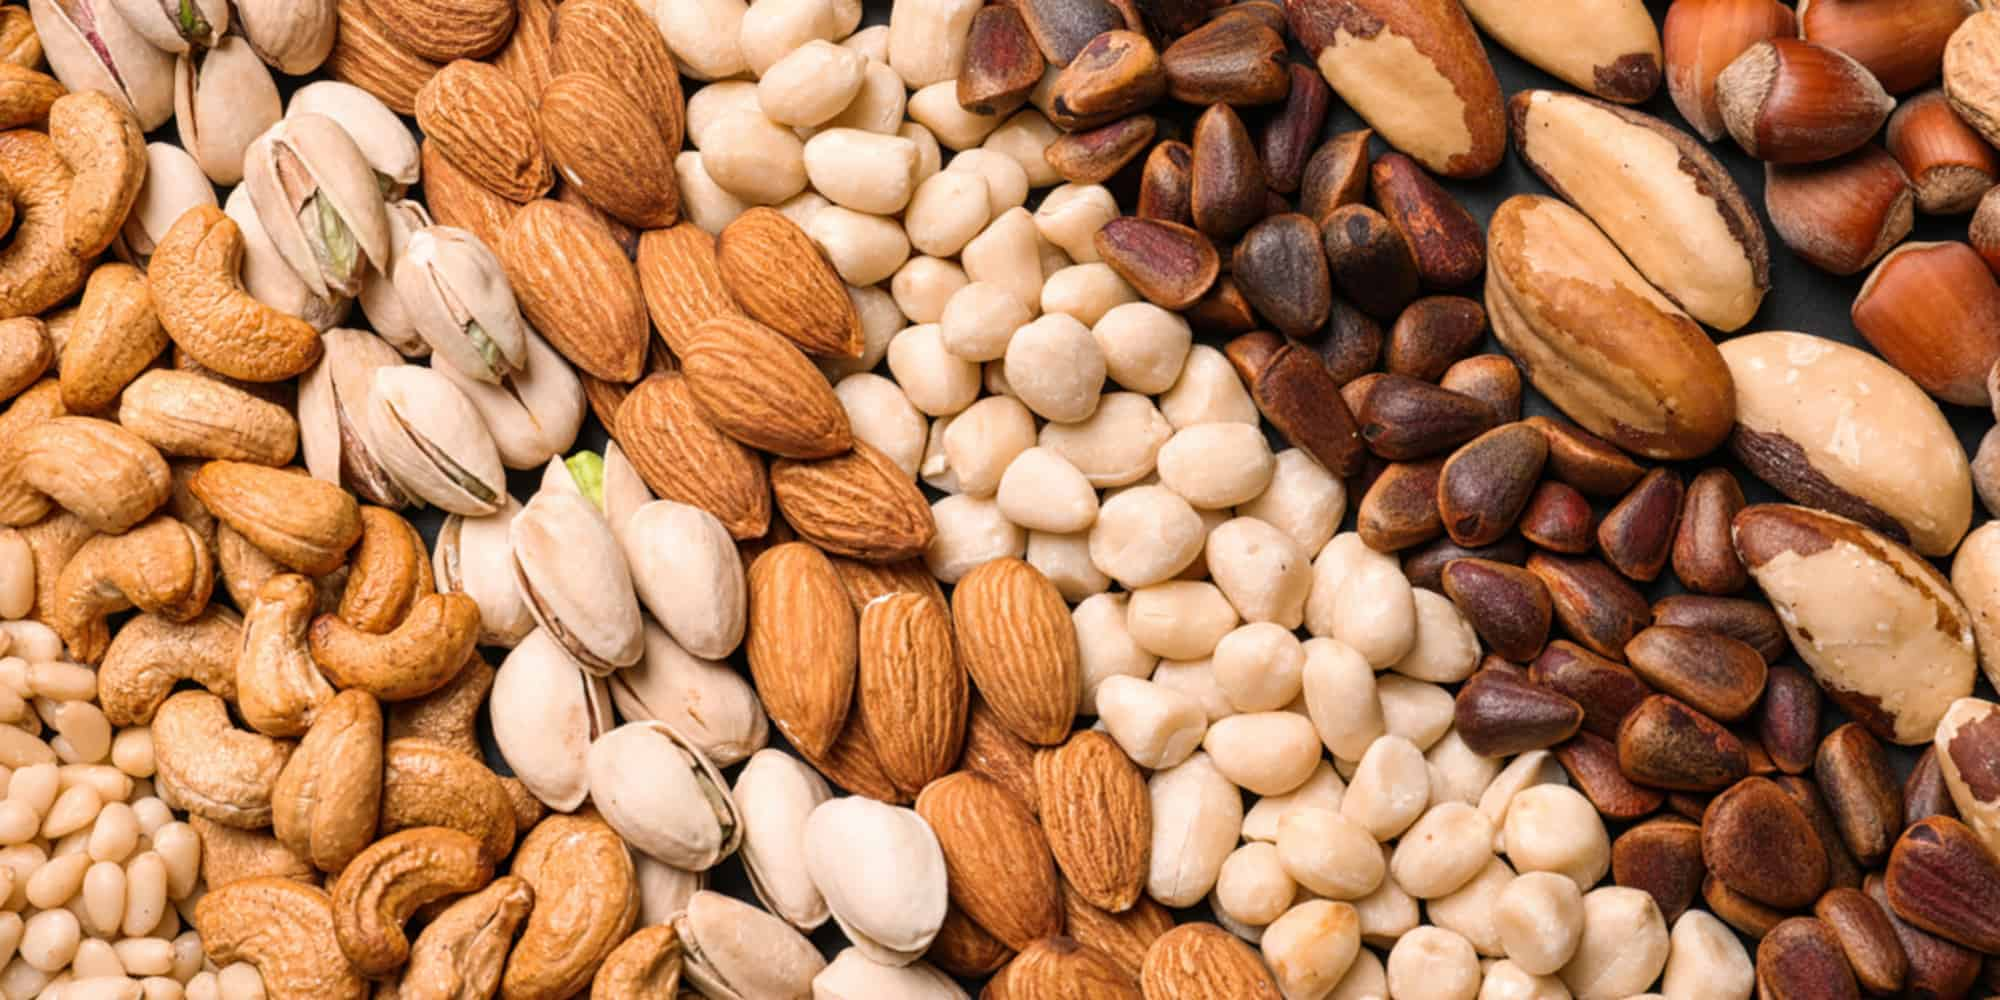 Adding more mixed nuts to your diet